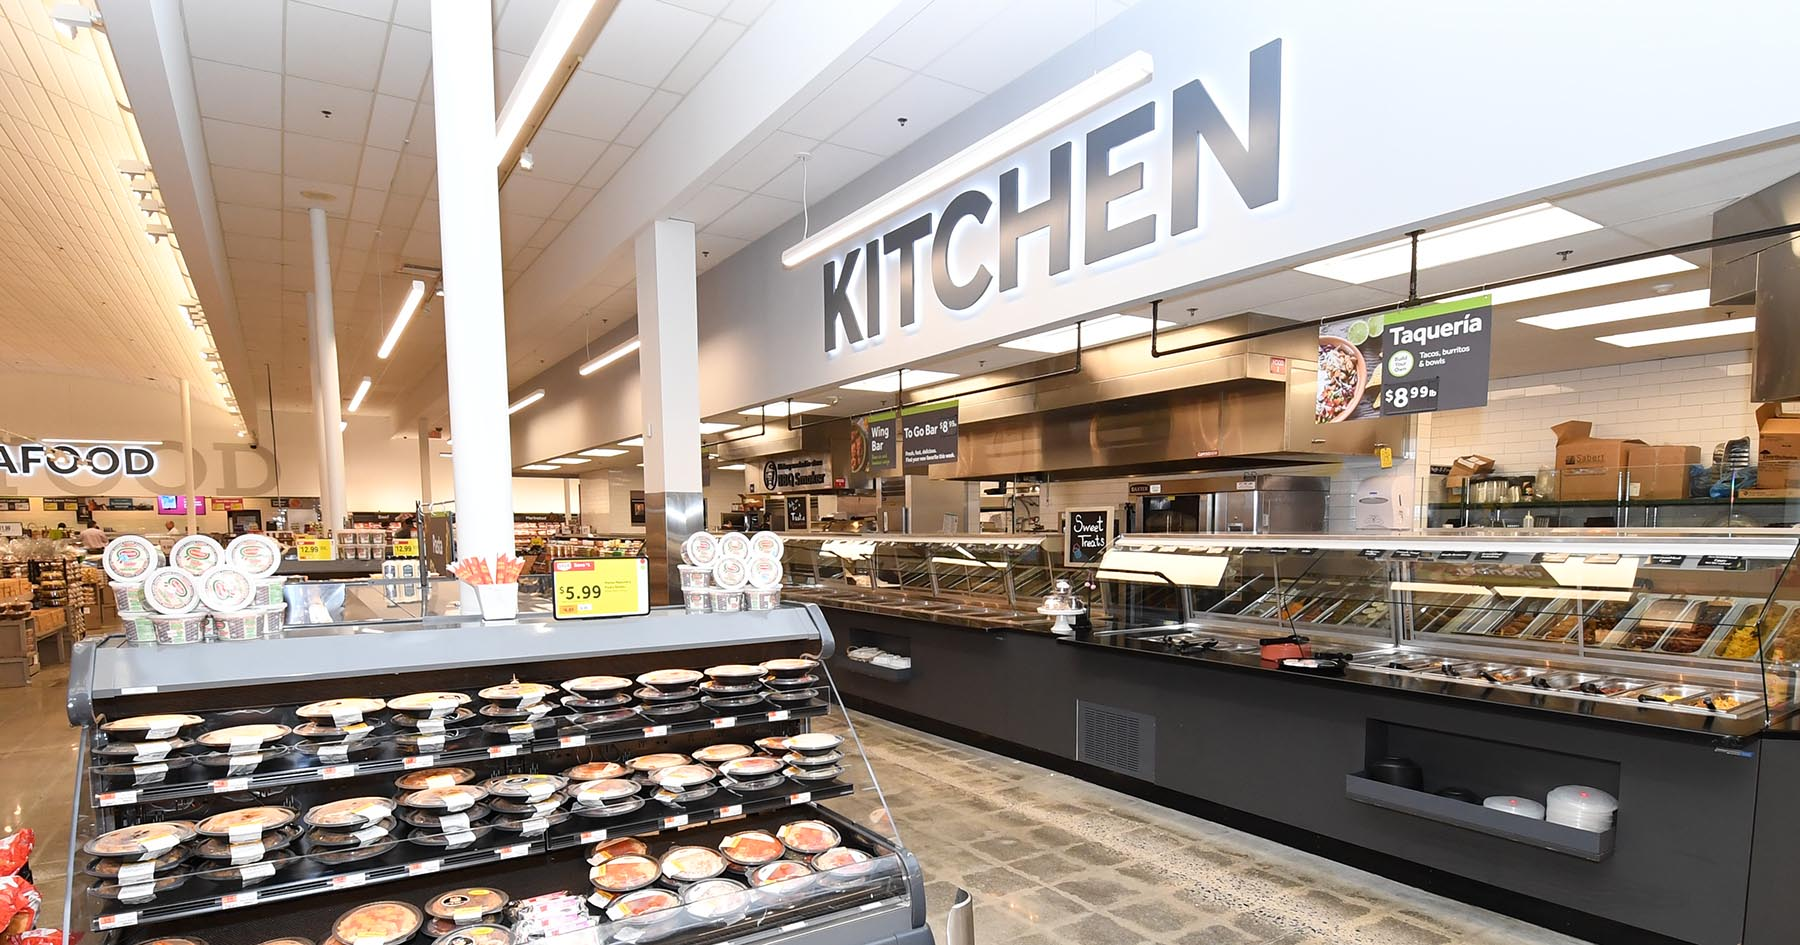 New Kitchens with Meals on the Go at Stop & Shop